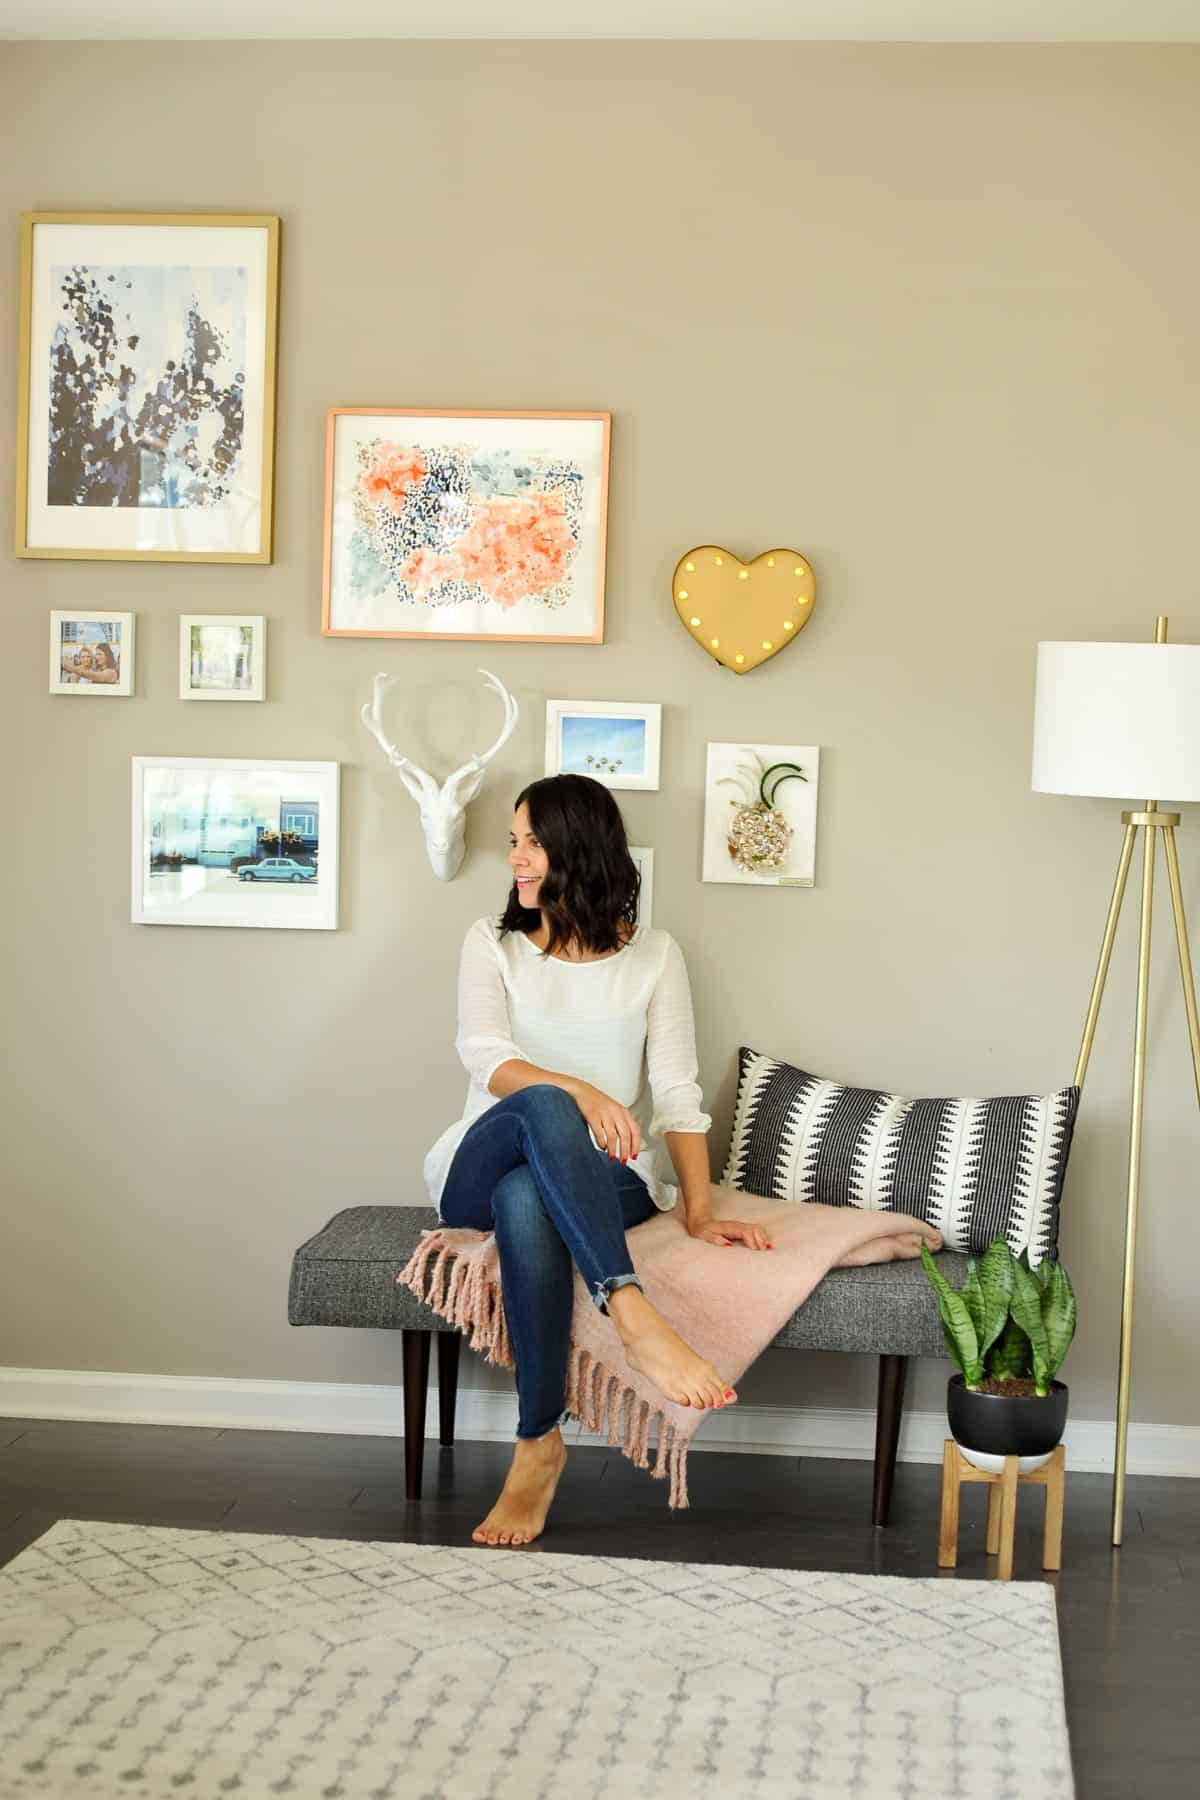 Gallery wall ideas - My Style Vita - @mystylevita - 8